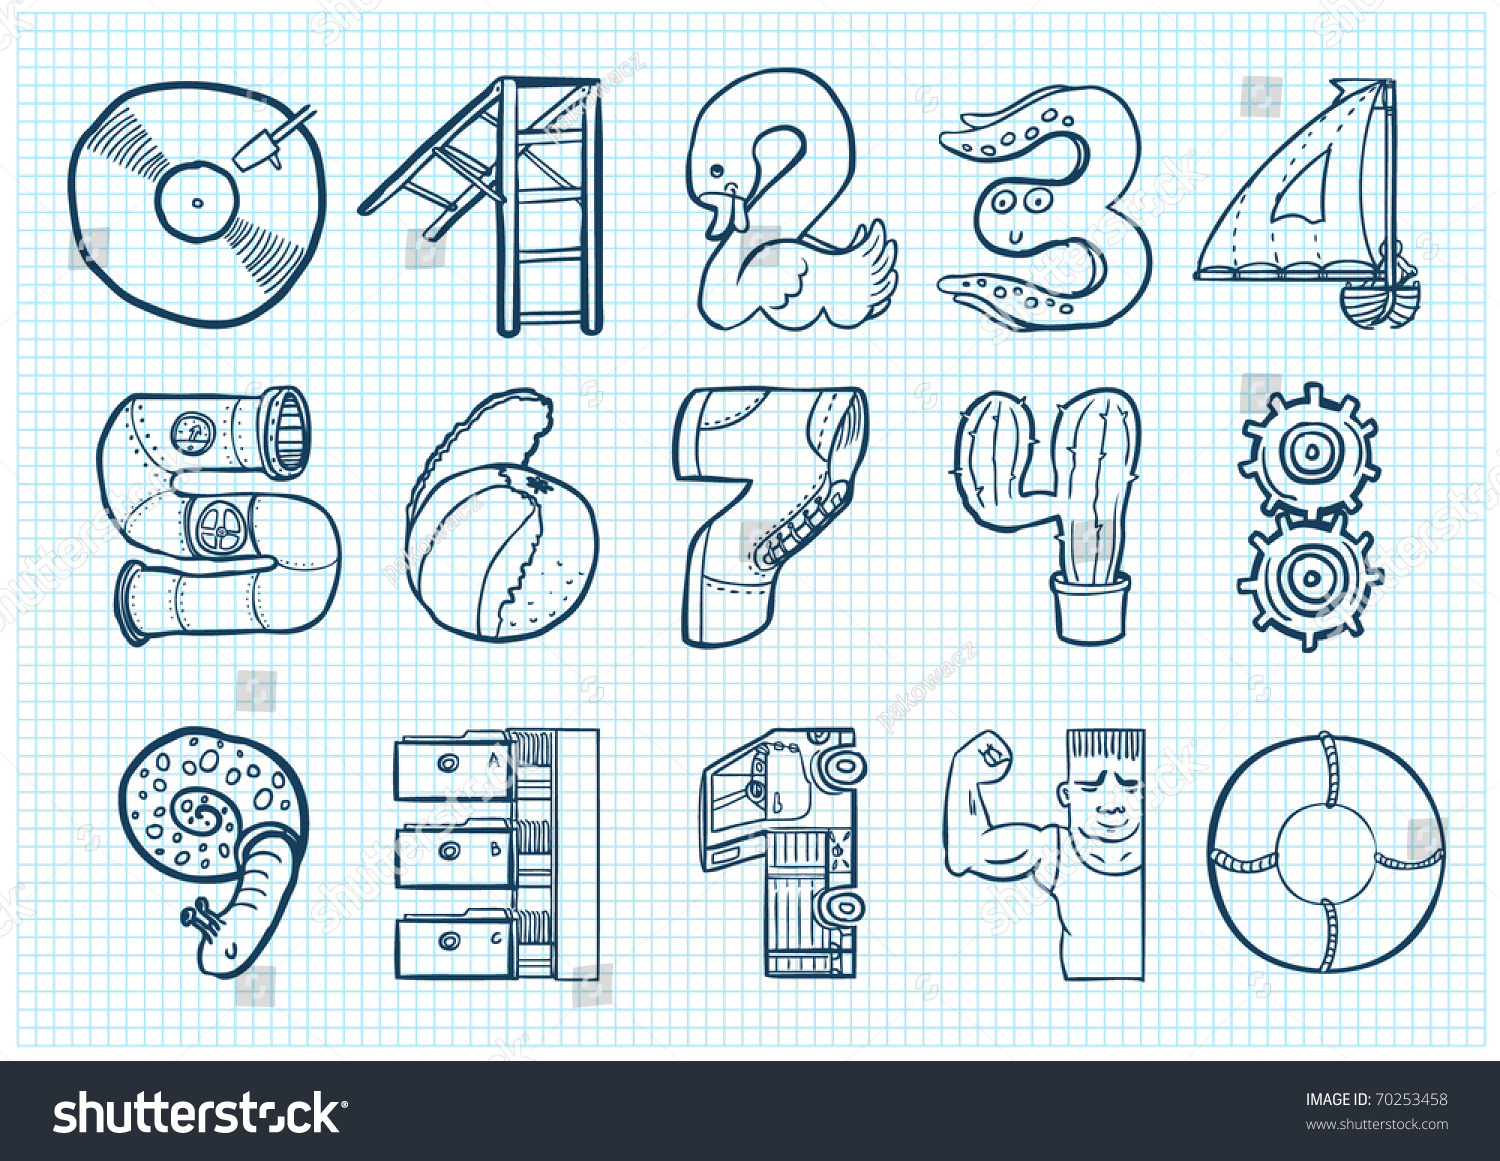 Funny Doodle Numbers Stock Vector (Royalty Free) 70253458 - Shutterstock